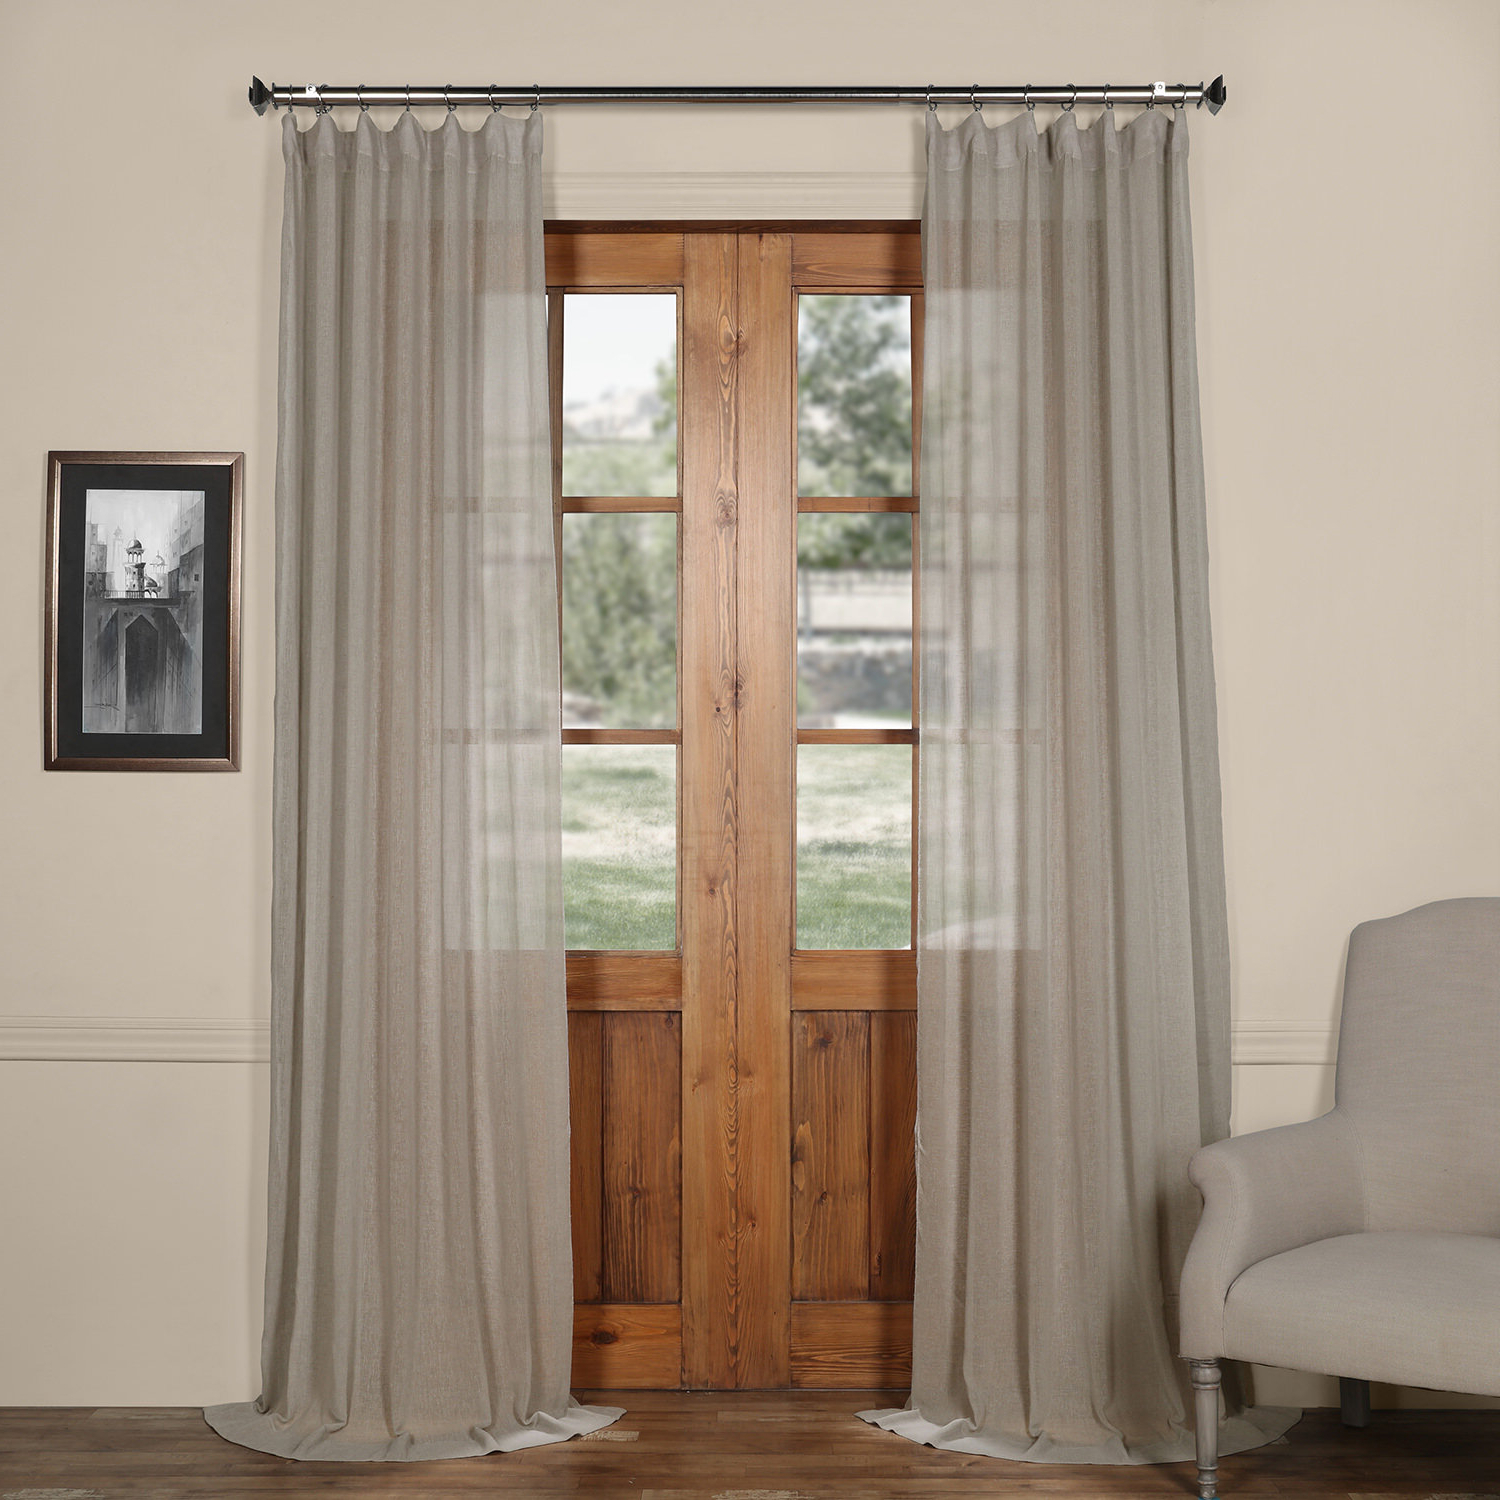 Widely Used Tab Top Sheer Single Curtain Panels Throughout Bowley Solid Sheer Tab Top Single Curtain Panel (View 7 of 20)